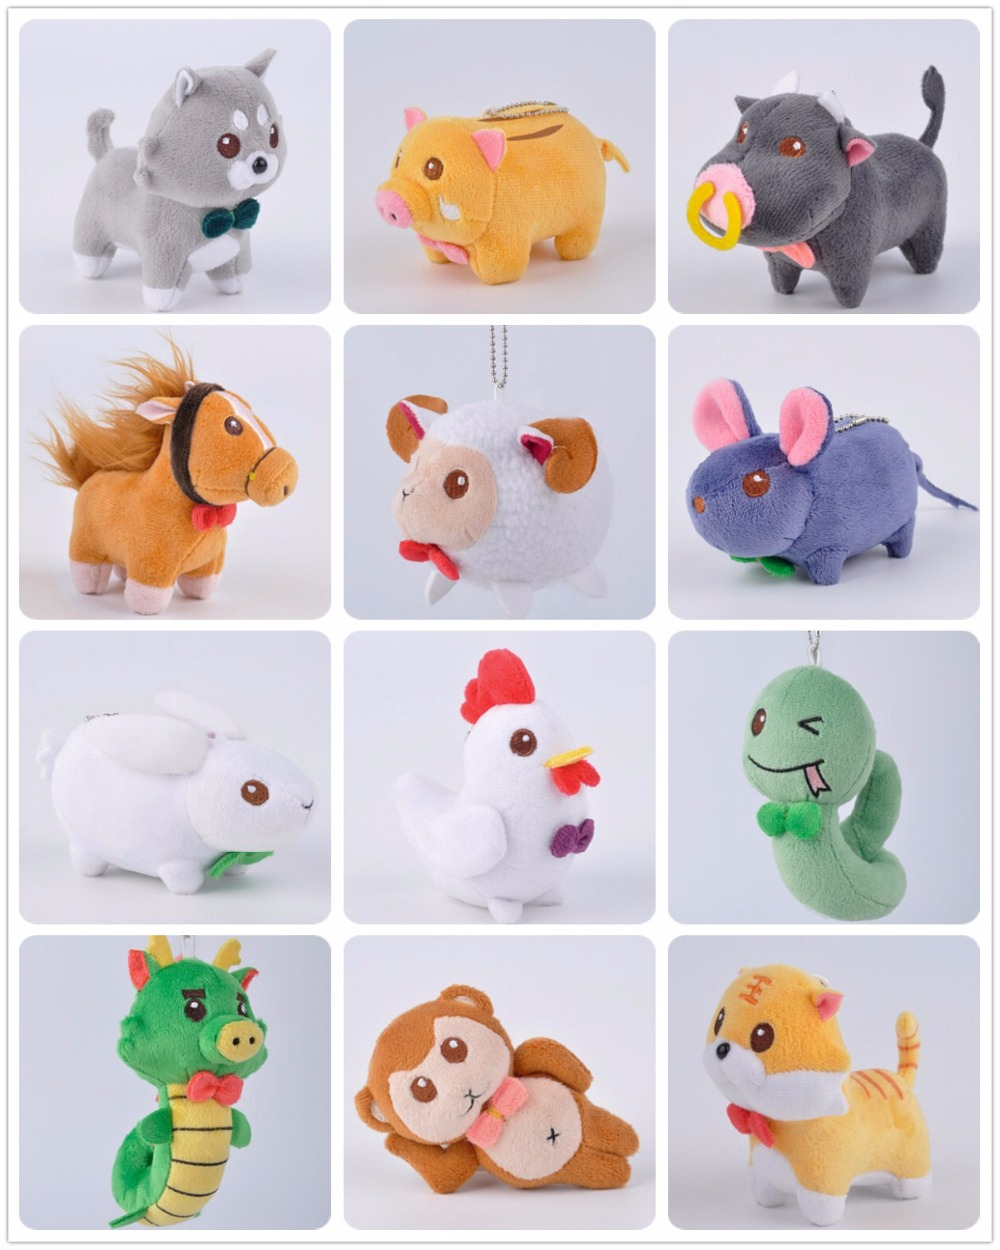 Chinese Zodiac Rat Ox Tiger Rabbit Dragon Snake Horse Sheep Monkey Rooster Dog Pig Dolls Puppet Toy Phone Bag Hang Decorations